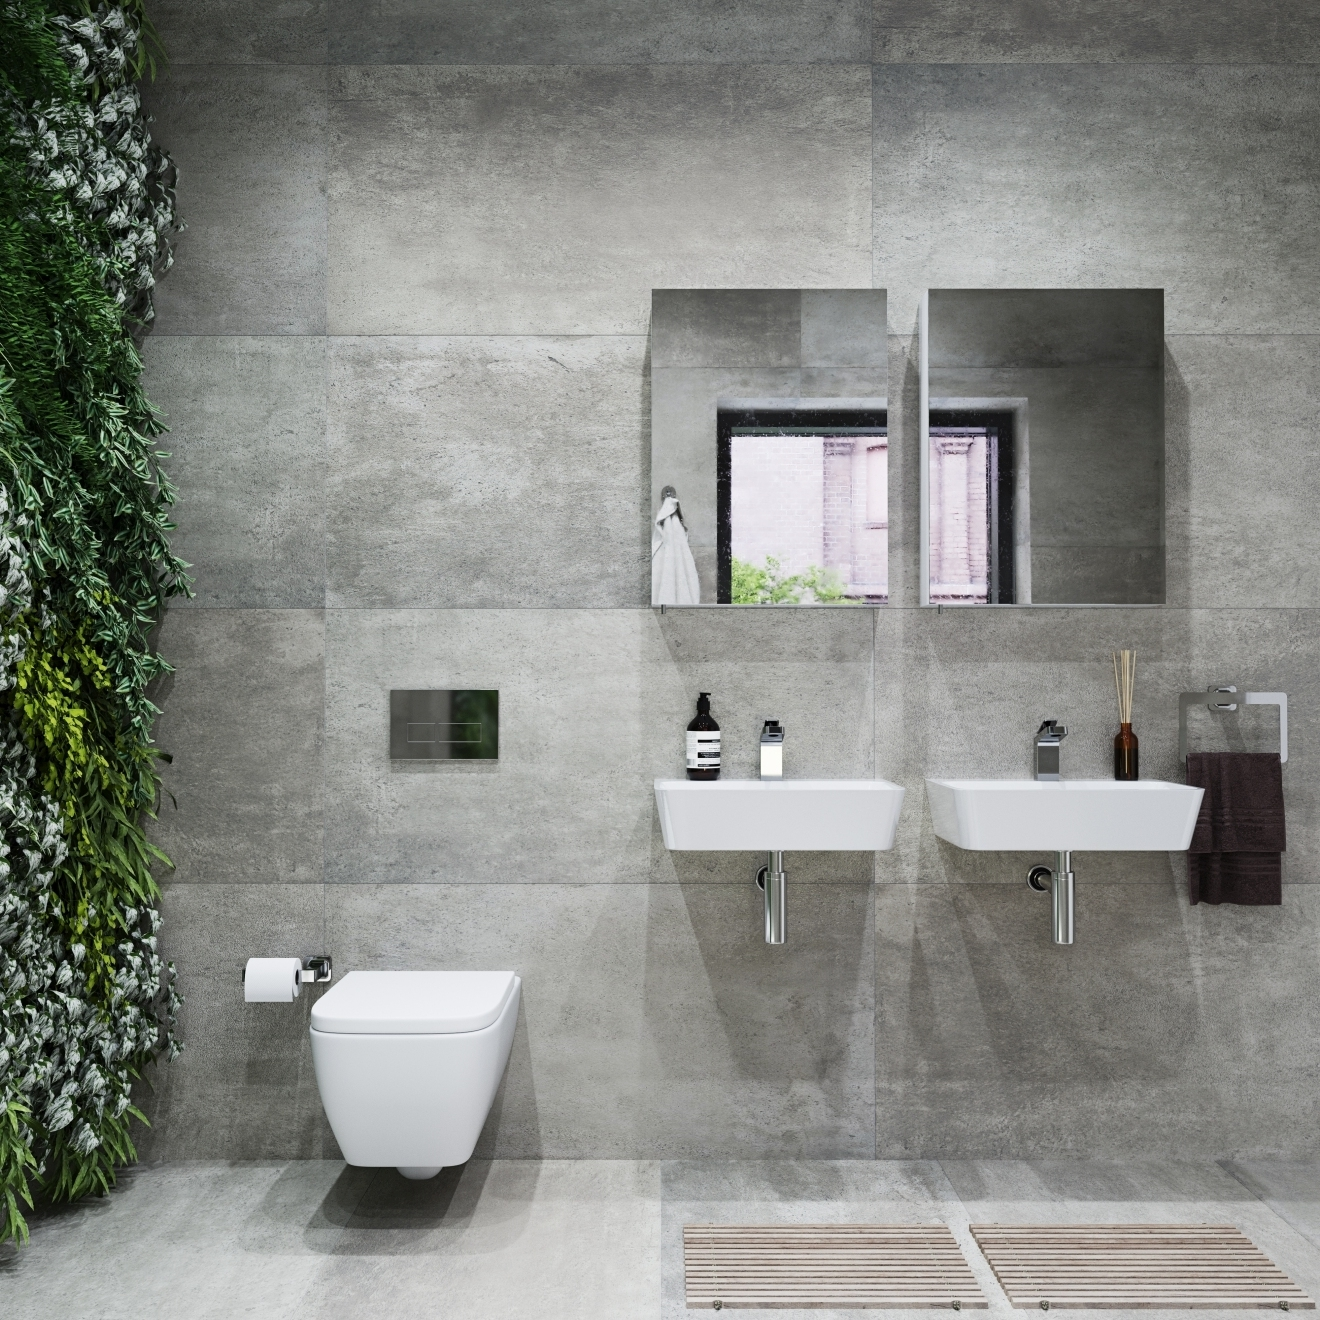 Wickes Launches Biggest Bathroom Collection Yet With 800 New 10+ Wickes Bathroom Design Inspirations